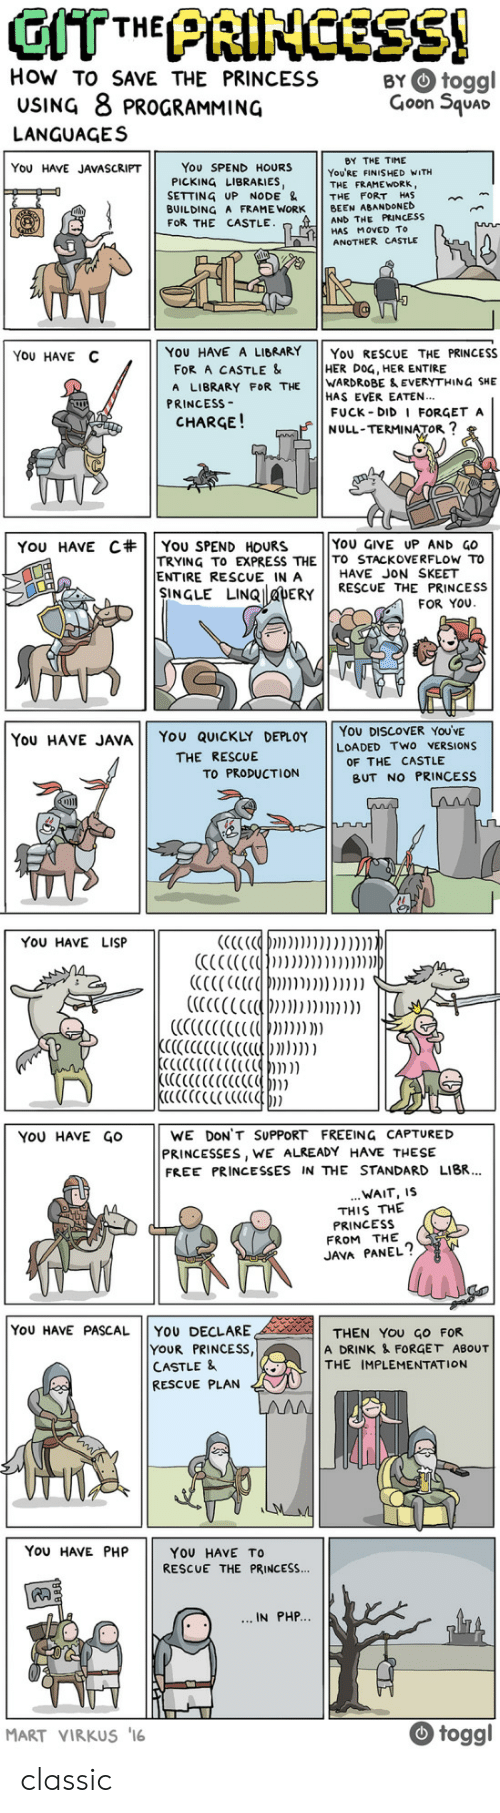 Work, Discover, and Express: How TO SAVE THE PRINCESS BYtoggl  USING 8 PROGRAMMING  Goon 5quac  LANGUAGES  BY THE TIME  YoU'RE FINISHED WITH  THE FRAME WORK,  You SPEND HOURS  PICKING LIBRARIES,  SETTING UP NODE & THE FORT HAS  BUILDING A FRAME WORK BEEN ABANDONED  FOR THE CASTLE  YOU HAVE JAVASCRIPT  AND THE PRINCESS  HAS MoVED To  ANOTHER CASTLE  YoU HAVE C  YOU HAVE A LIBRARY YoU RESCUE THE PRINCESS  FOR A CASTLE &  A LIBRARY FOR THE WARDROBE & EVERYTHING SHE  HER DOG, HER ENTIRE  HAS EVER EATEN..  FUCK DID I FORGET A  NULL-TERMINATOR  PRINCESs-  CHARGE!  YOU GIVE UP AND GO  TRYING TO EXPRESS THE TO STACKOVERFLOw To  YOU HAVE C#| | You SPEND HOURS  ENTIRE RESCUE IN A  HAVE JON SKEET  NGLE LINQ DERY RESCUE THE PRINCESS  FOR YOU  You HAVE JAVA YOU QUICKLY DEPLOY YOU DISCOVER YOUVE  LOADED TWO VERSIONS  THE RESCUE  OF THE CASTLE  PRODUCTION BUT NO  BUT NO PRINCESS  YOU HAVE LISP  YoU HAvE GOWE DON'T SUPPORT FREEING CAPTURED  PRINCESSES, WE ALREADY HAVE THESIE  FREE PRINCESSES IN THE STANDARD LIBR.  WAIT, IS  THIS THE  PRINCESS  FROM THE  JAVA PANEL?  YoU HAVE PASCAL YOU DECLARE  YOUR PRINCESS  CASTLE &  RESCUE PLAN  THEN YOU GO FOR  A DRINK & FORGET ABOUT  THE IMPLEMENTATION  You HAVE PHP  YOU HAVE TO  RESCUE THE PRINCESS...  IN PHP  MART VIRKUS 16  togg classic